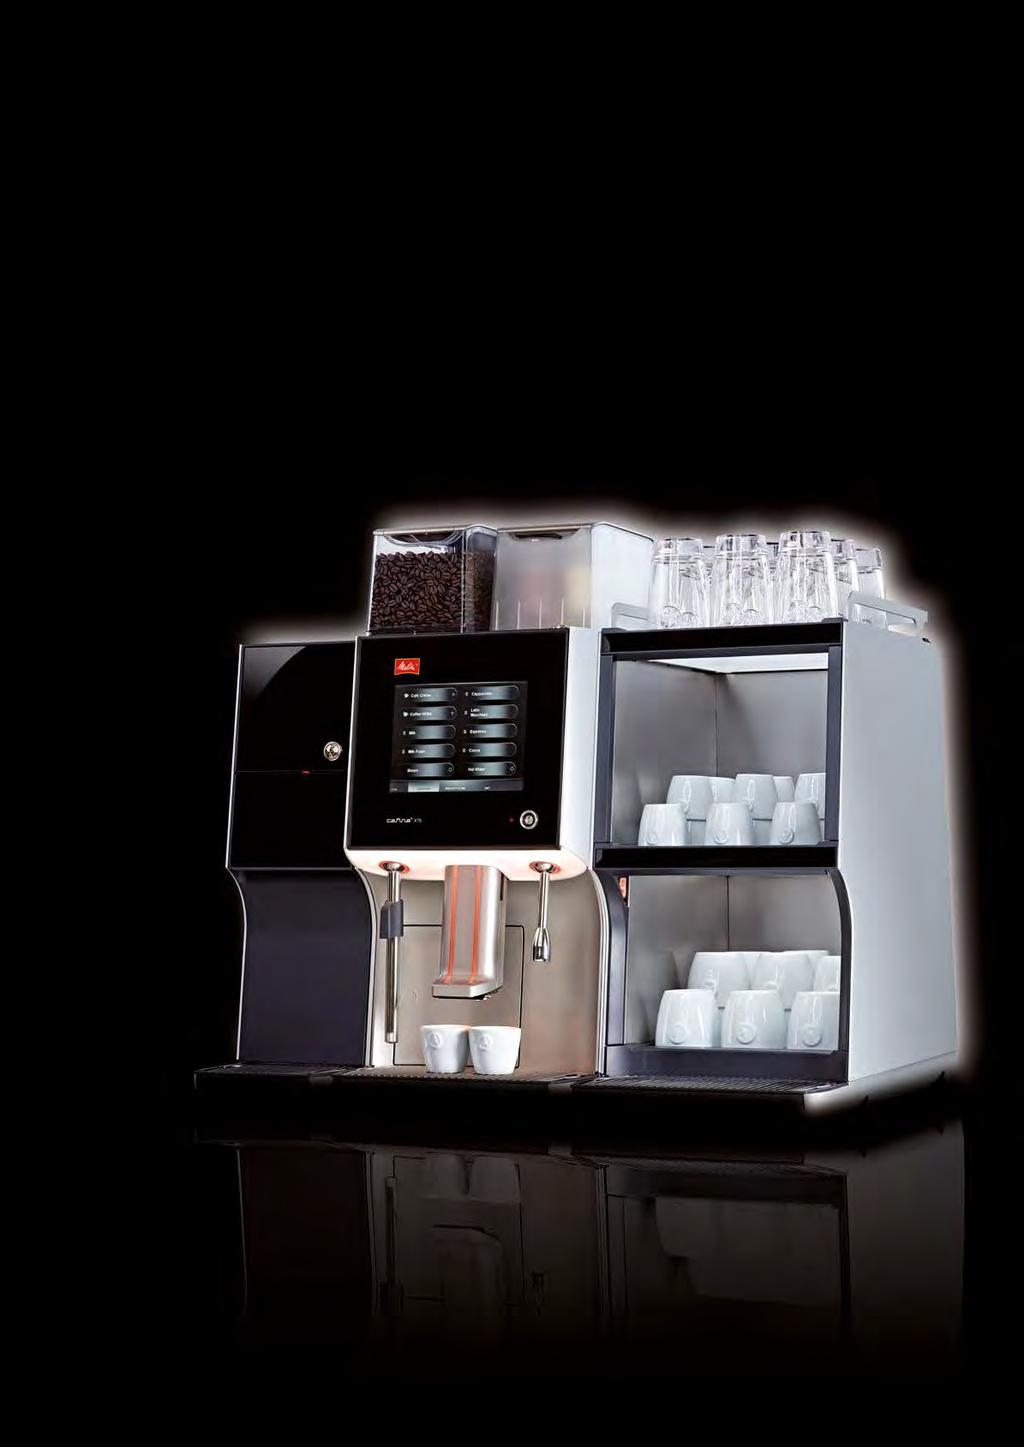 Cafina XT6 Choosing a new automatic coffee machine is an important decision for my business. So where should I begin? The new Cafina XT6 really does look good.